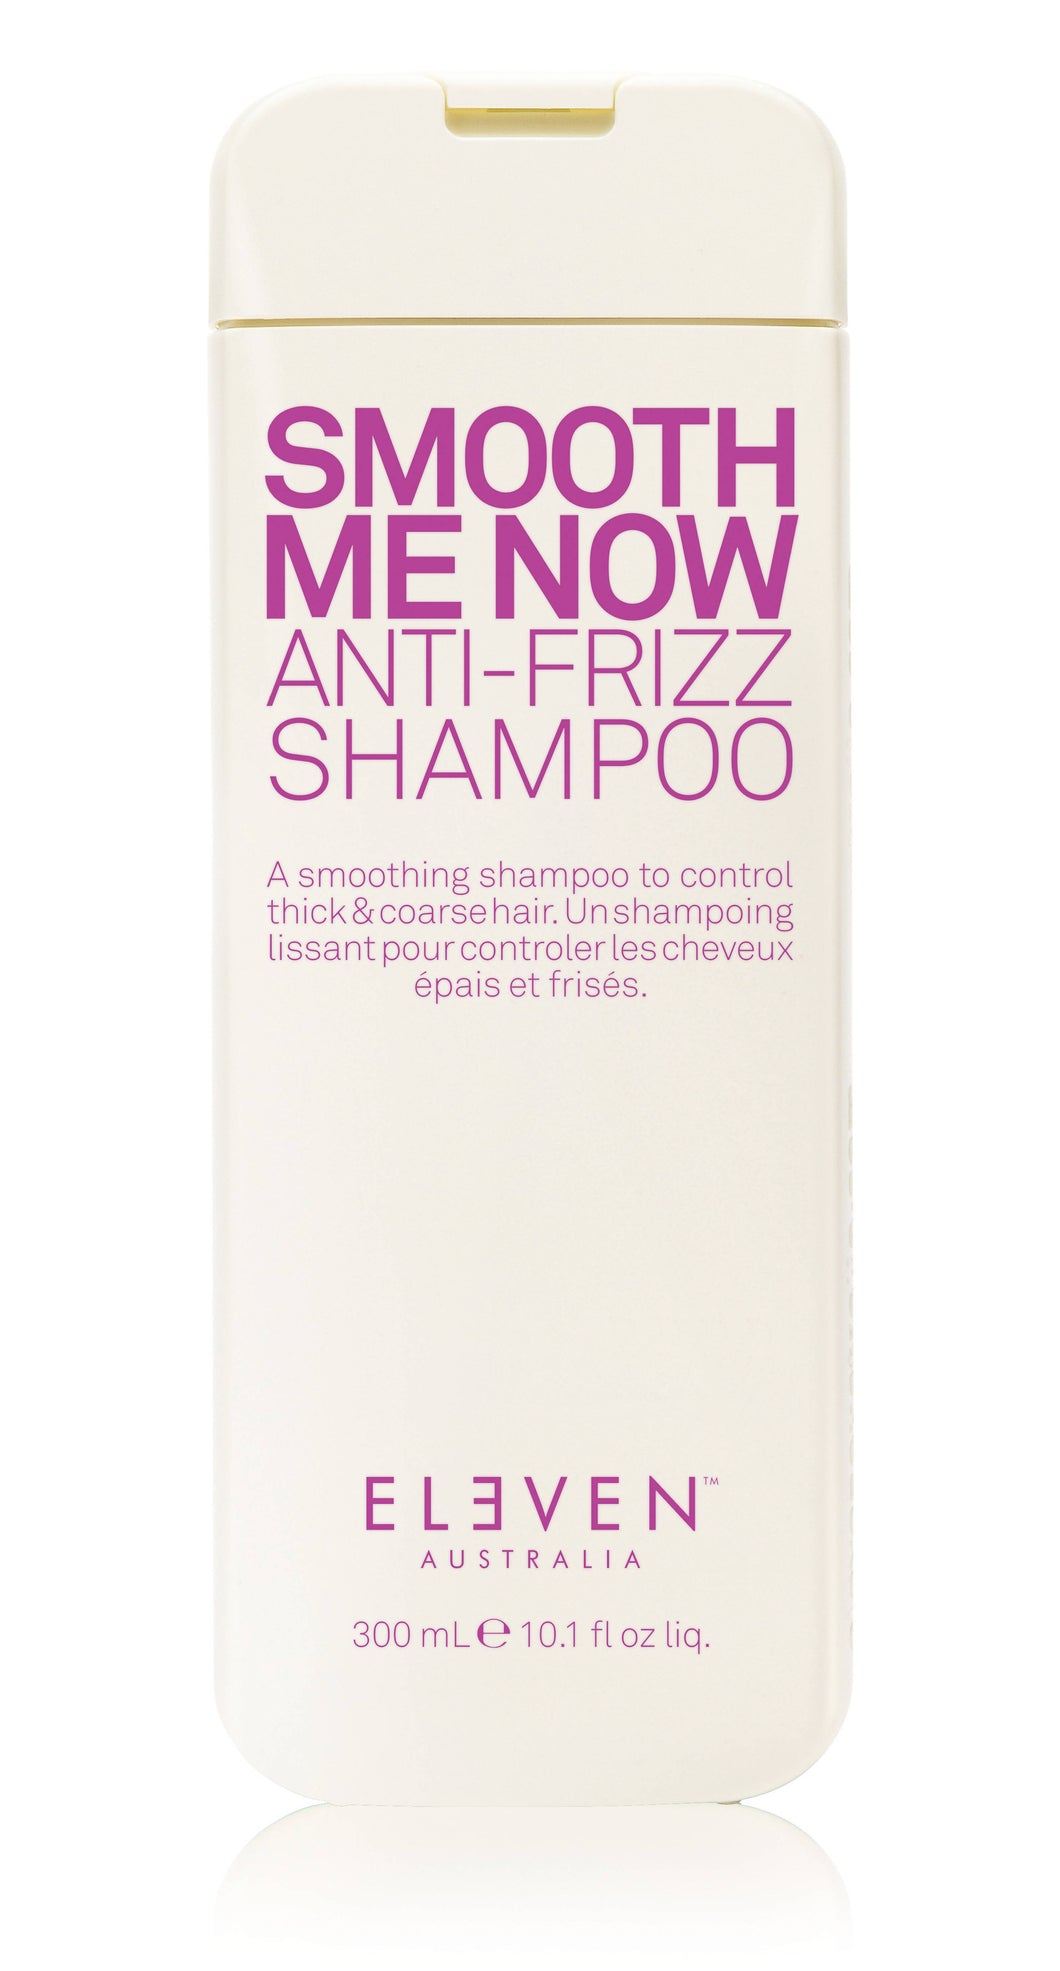 ELEVEN AUSTRALIA - SMOOTH ME NOW ANTI-FRIZZ SHAMPOO